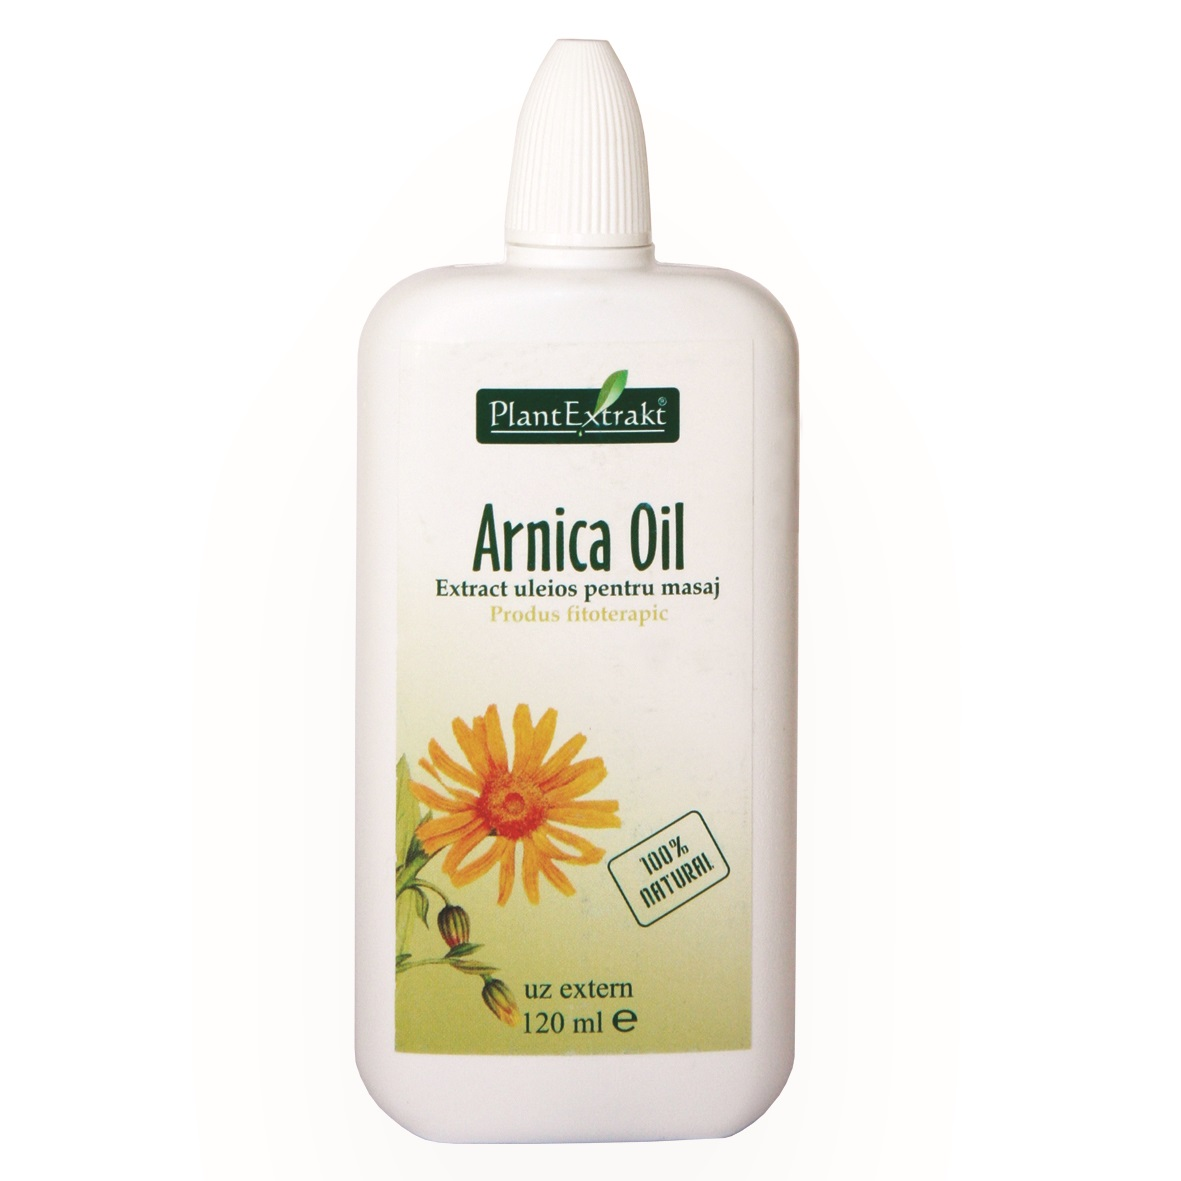 Ulei de arnica, 120ml, PlantExtrakt imagine produs 2021